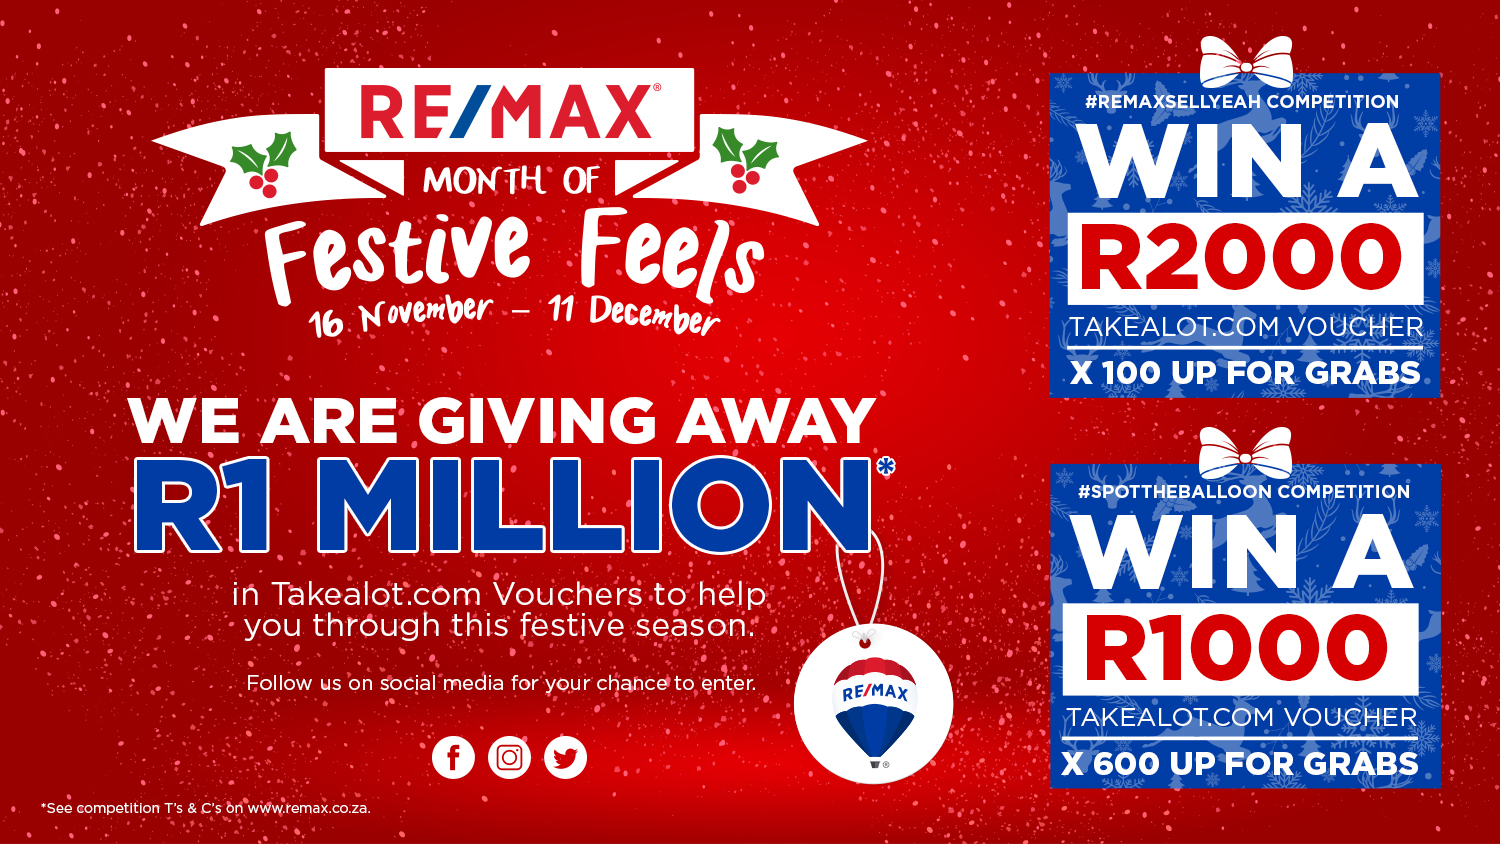 RE/MAX GIVES AWAY R1 MILLION WORTH OF PRIZES